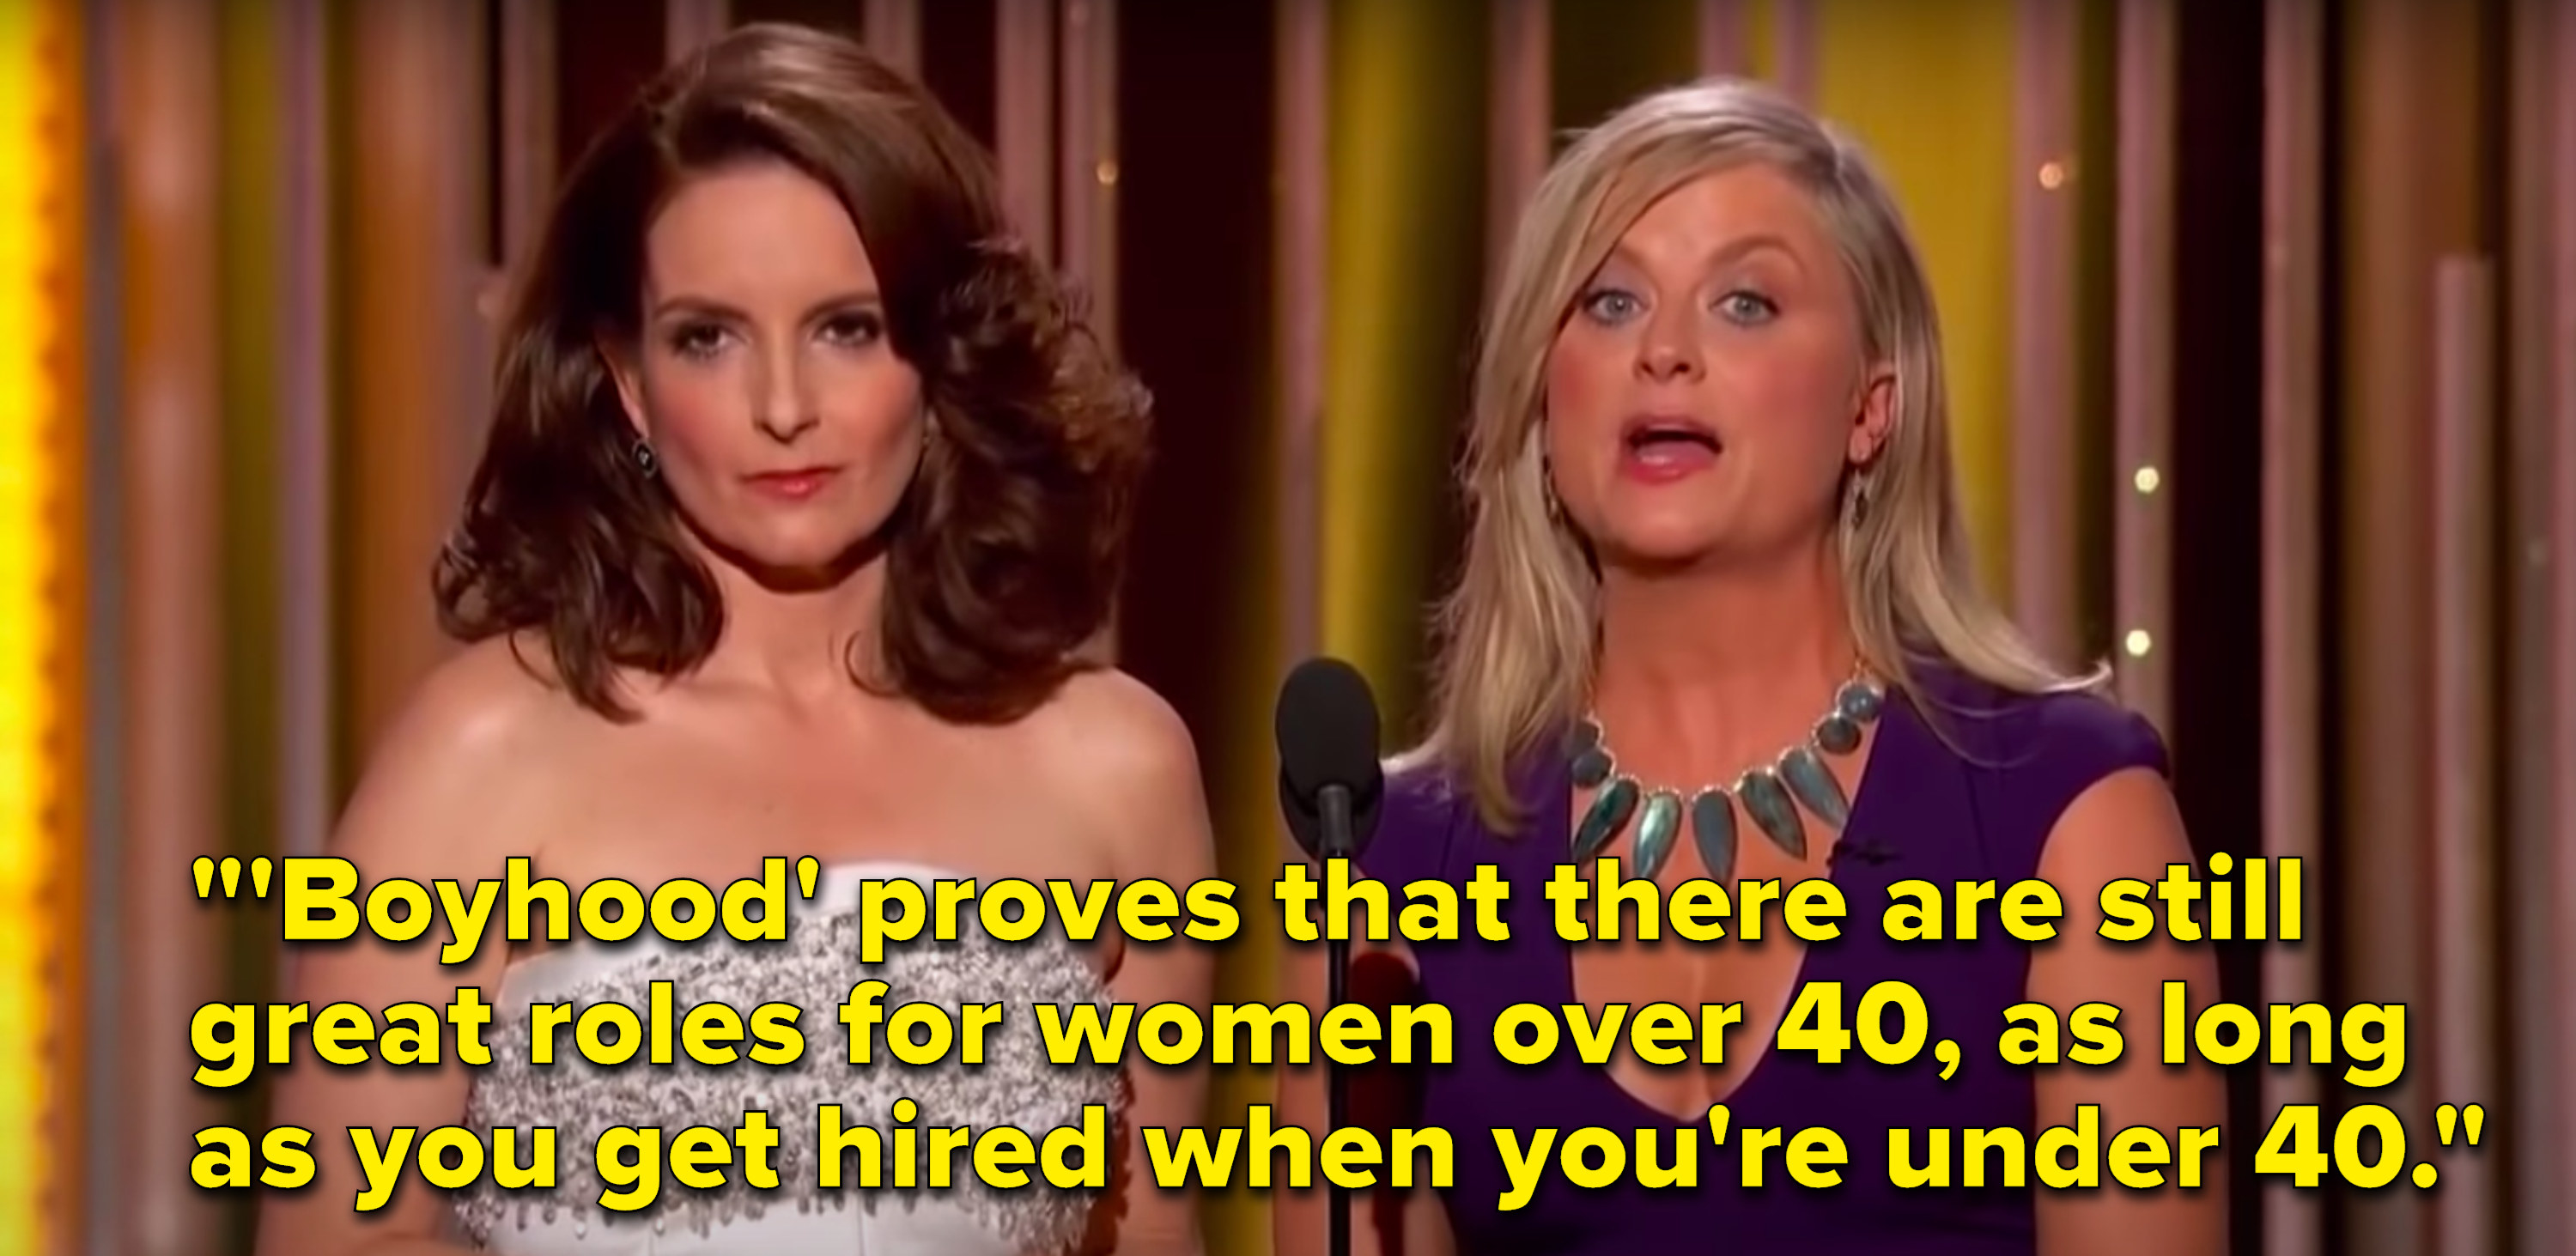 """Poehler says, """"'Boyhood' proves that there are still great roles for women over 40, as long as you get hired when you're under 40"""""""